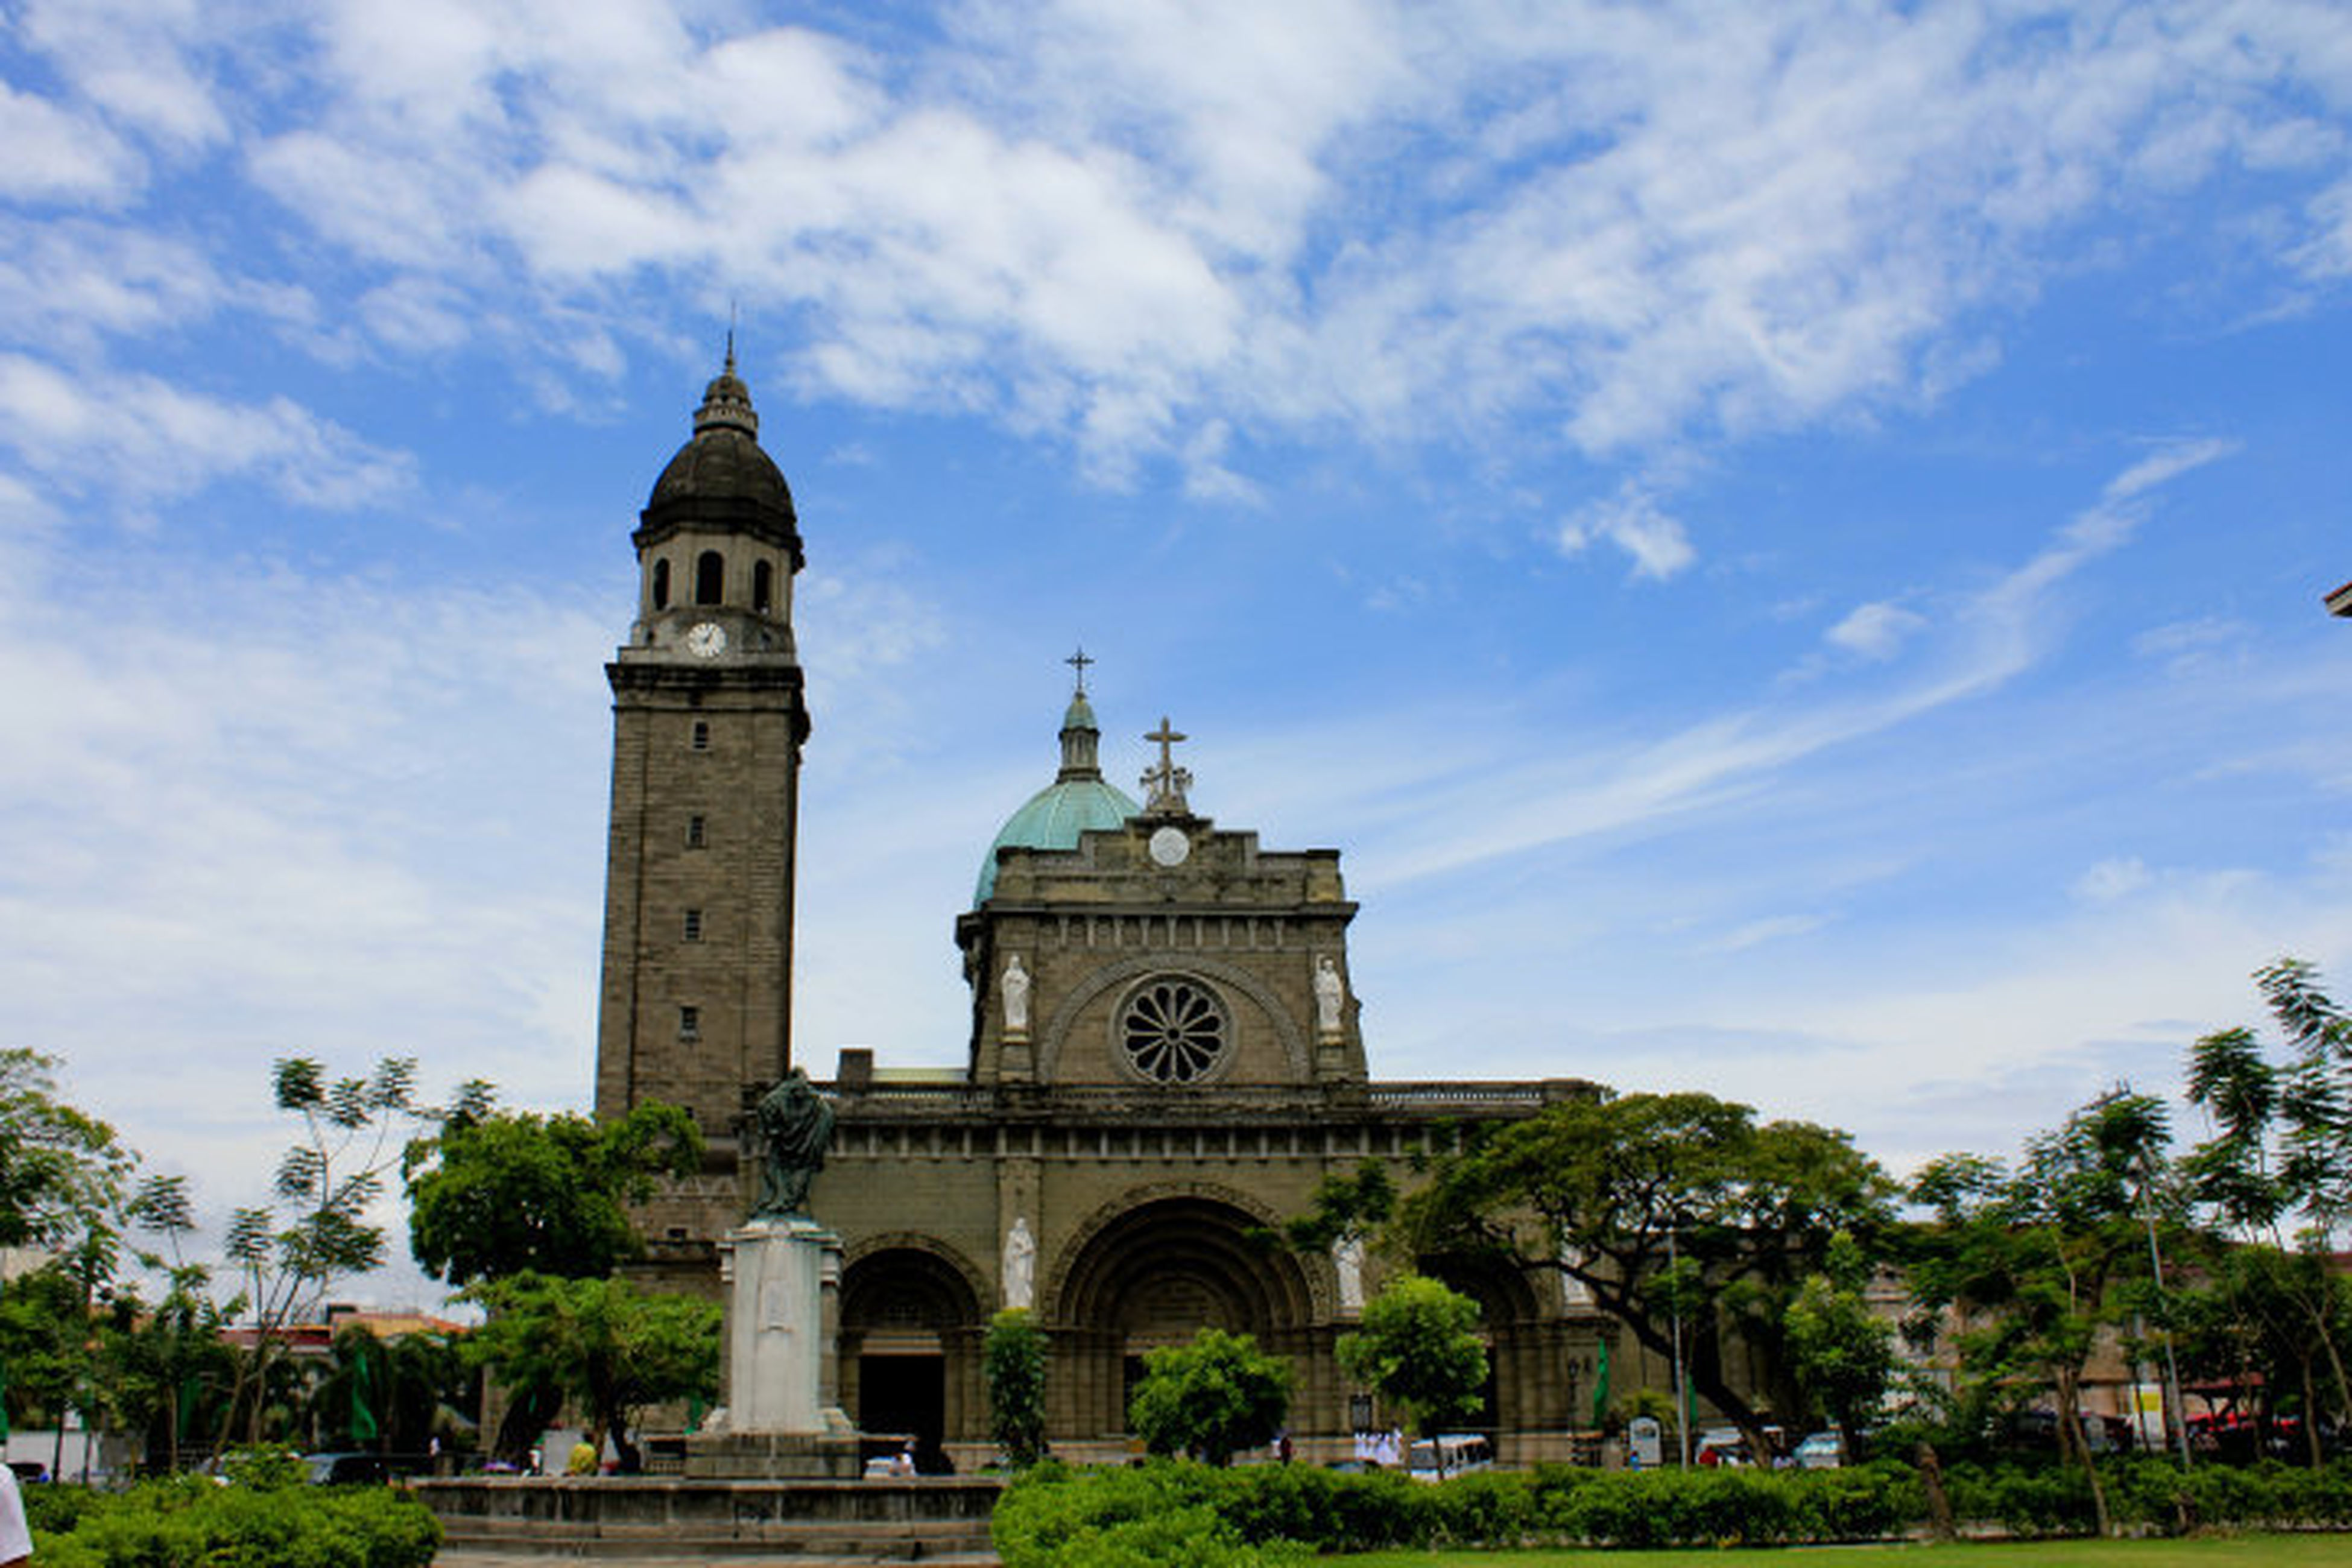 architecture, built structure, building exterior, religion, sky, tree, place of worship, church, spirituality, cloud - sky, history, low angle view, arch, facade, cloud, cathedral, famous place, travel destinations